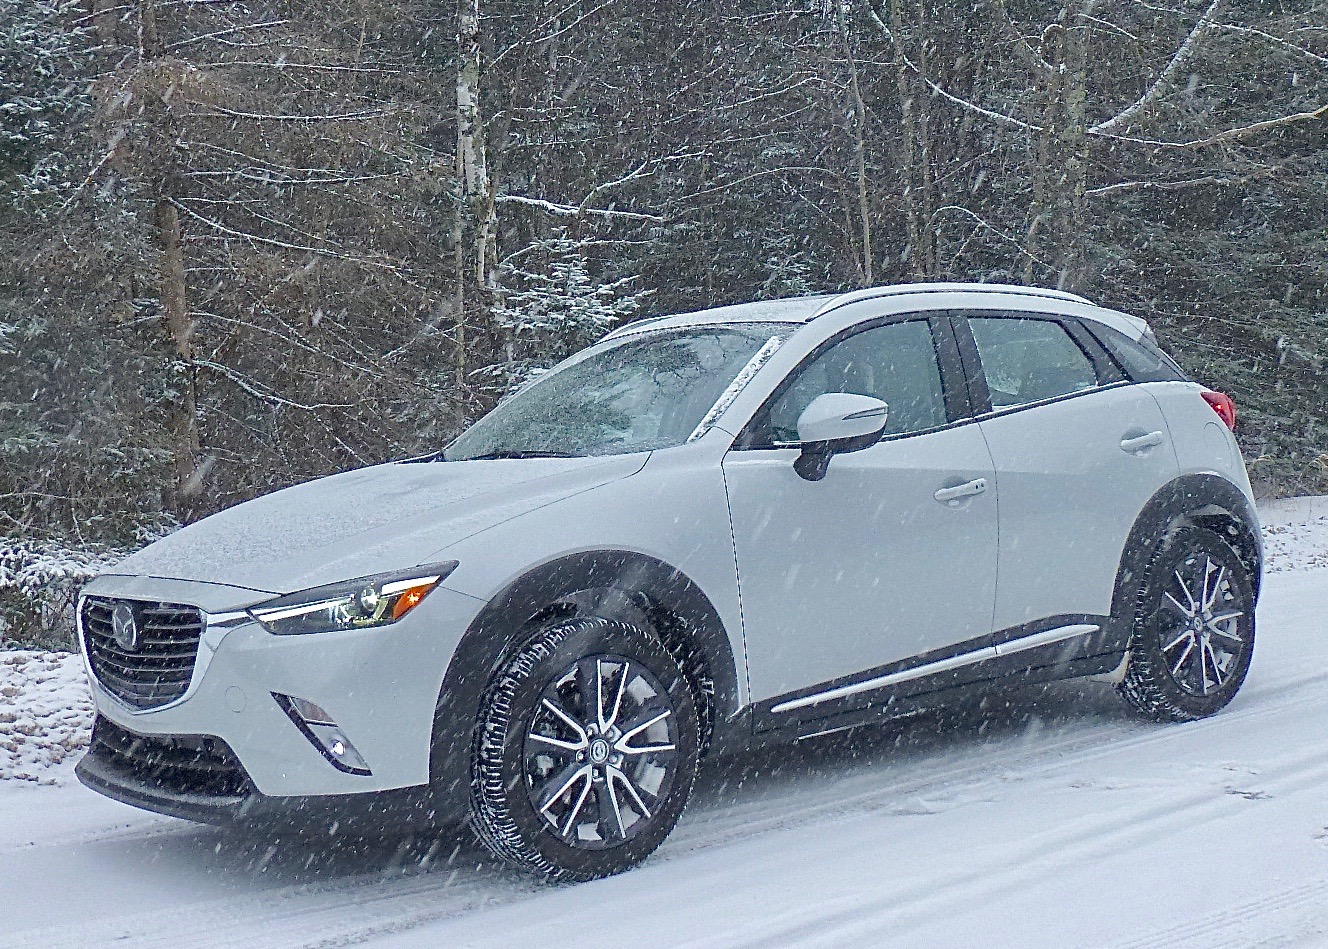 Mazda designers blended style into every contour and crease of the CX-3.